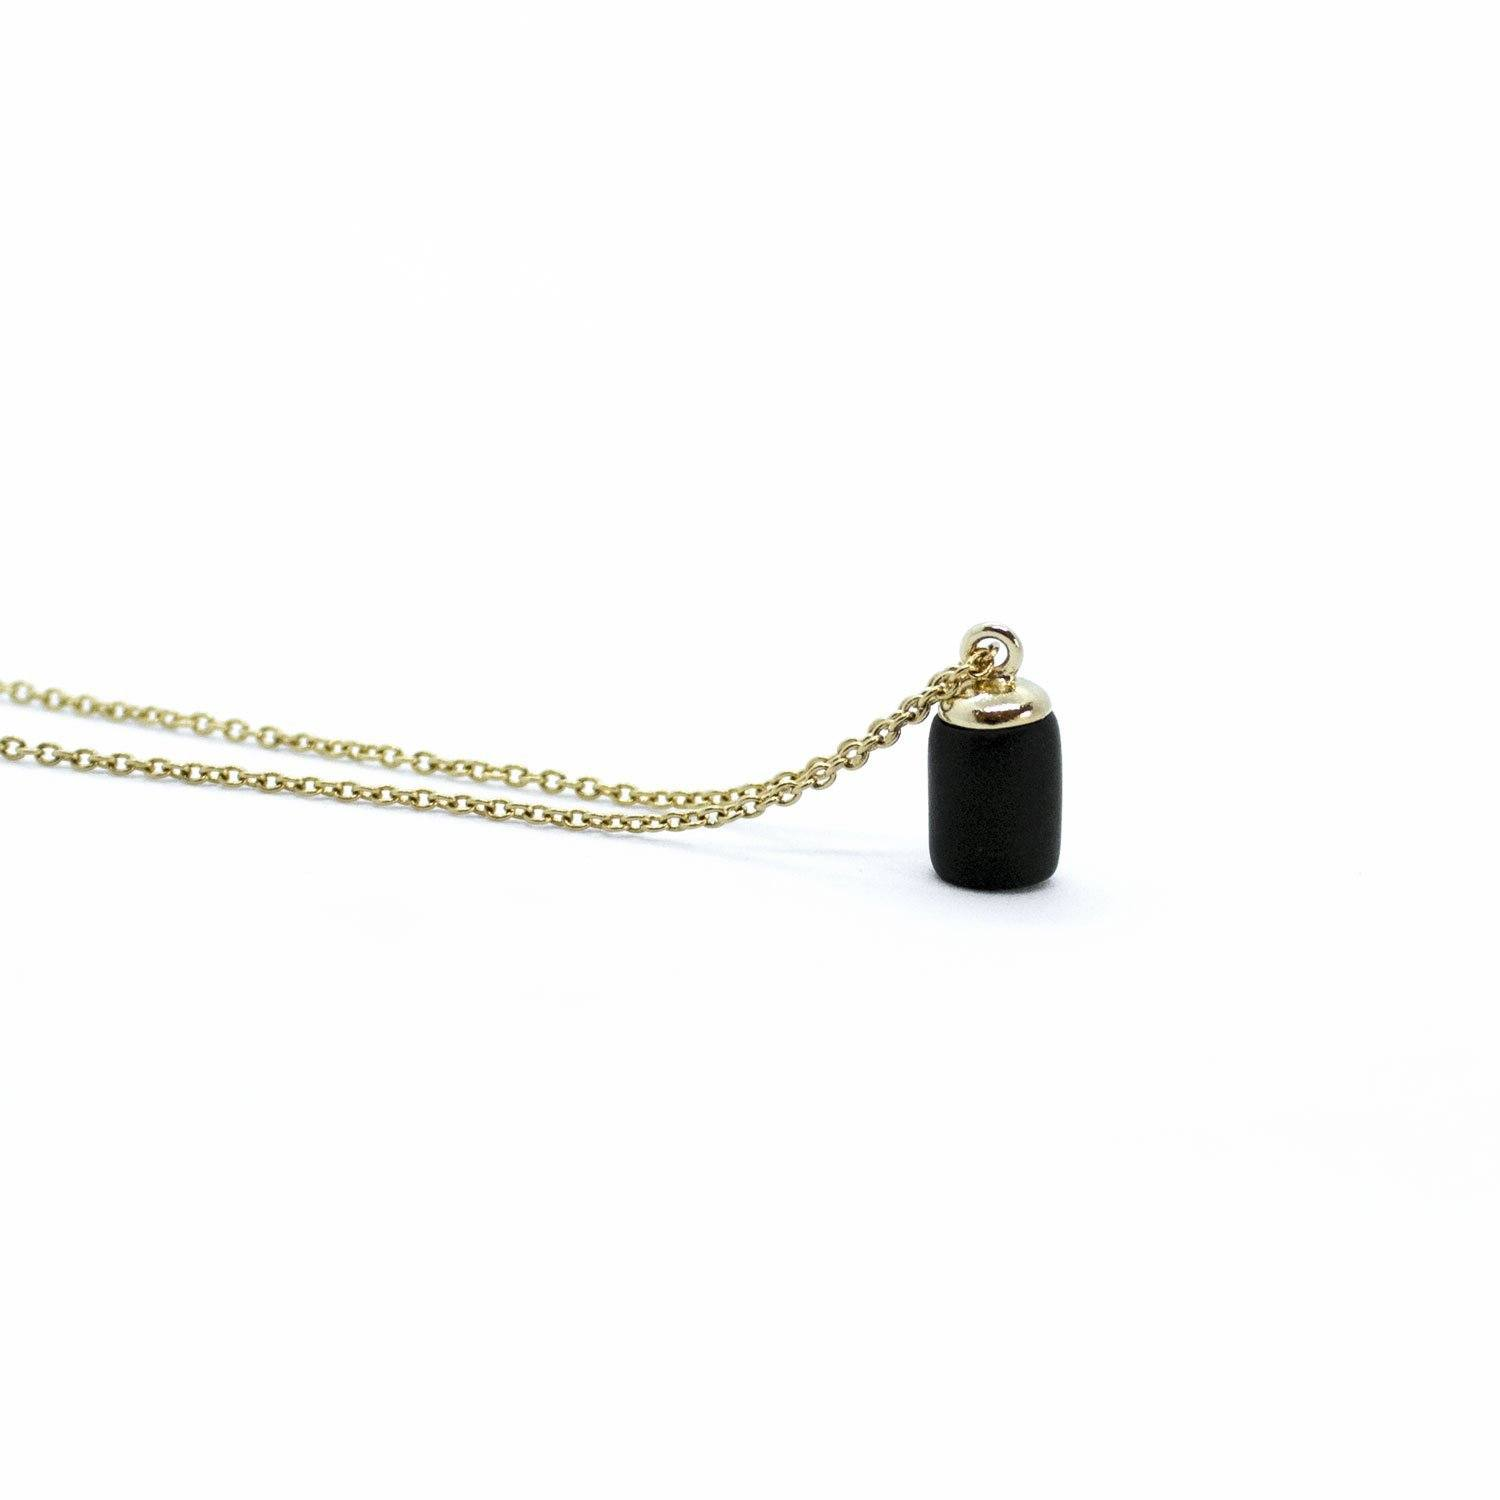 Gold Necklace - Tiny Weight Charm - Necklaces - 5mm Paper - Naiise